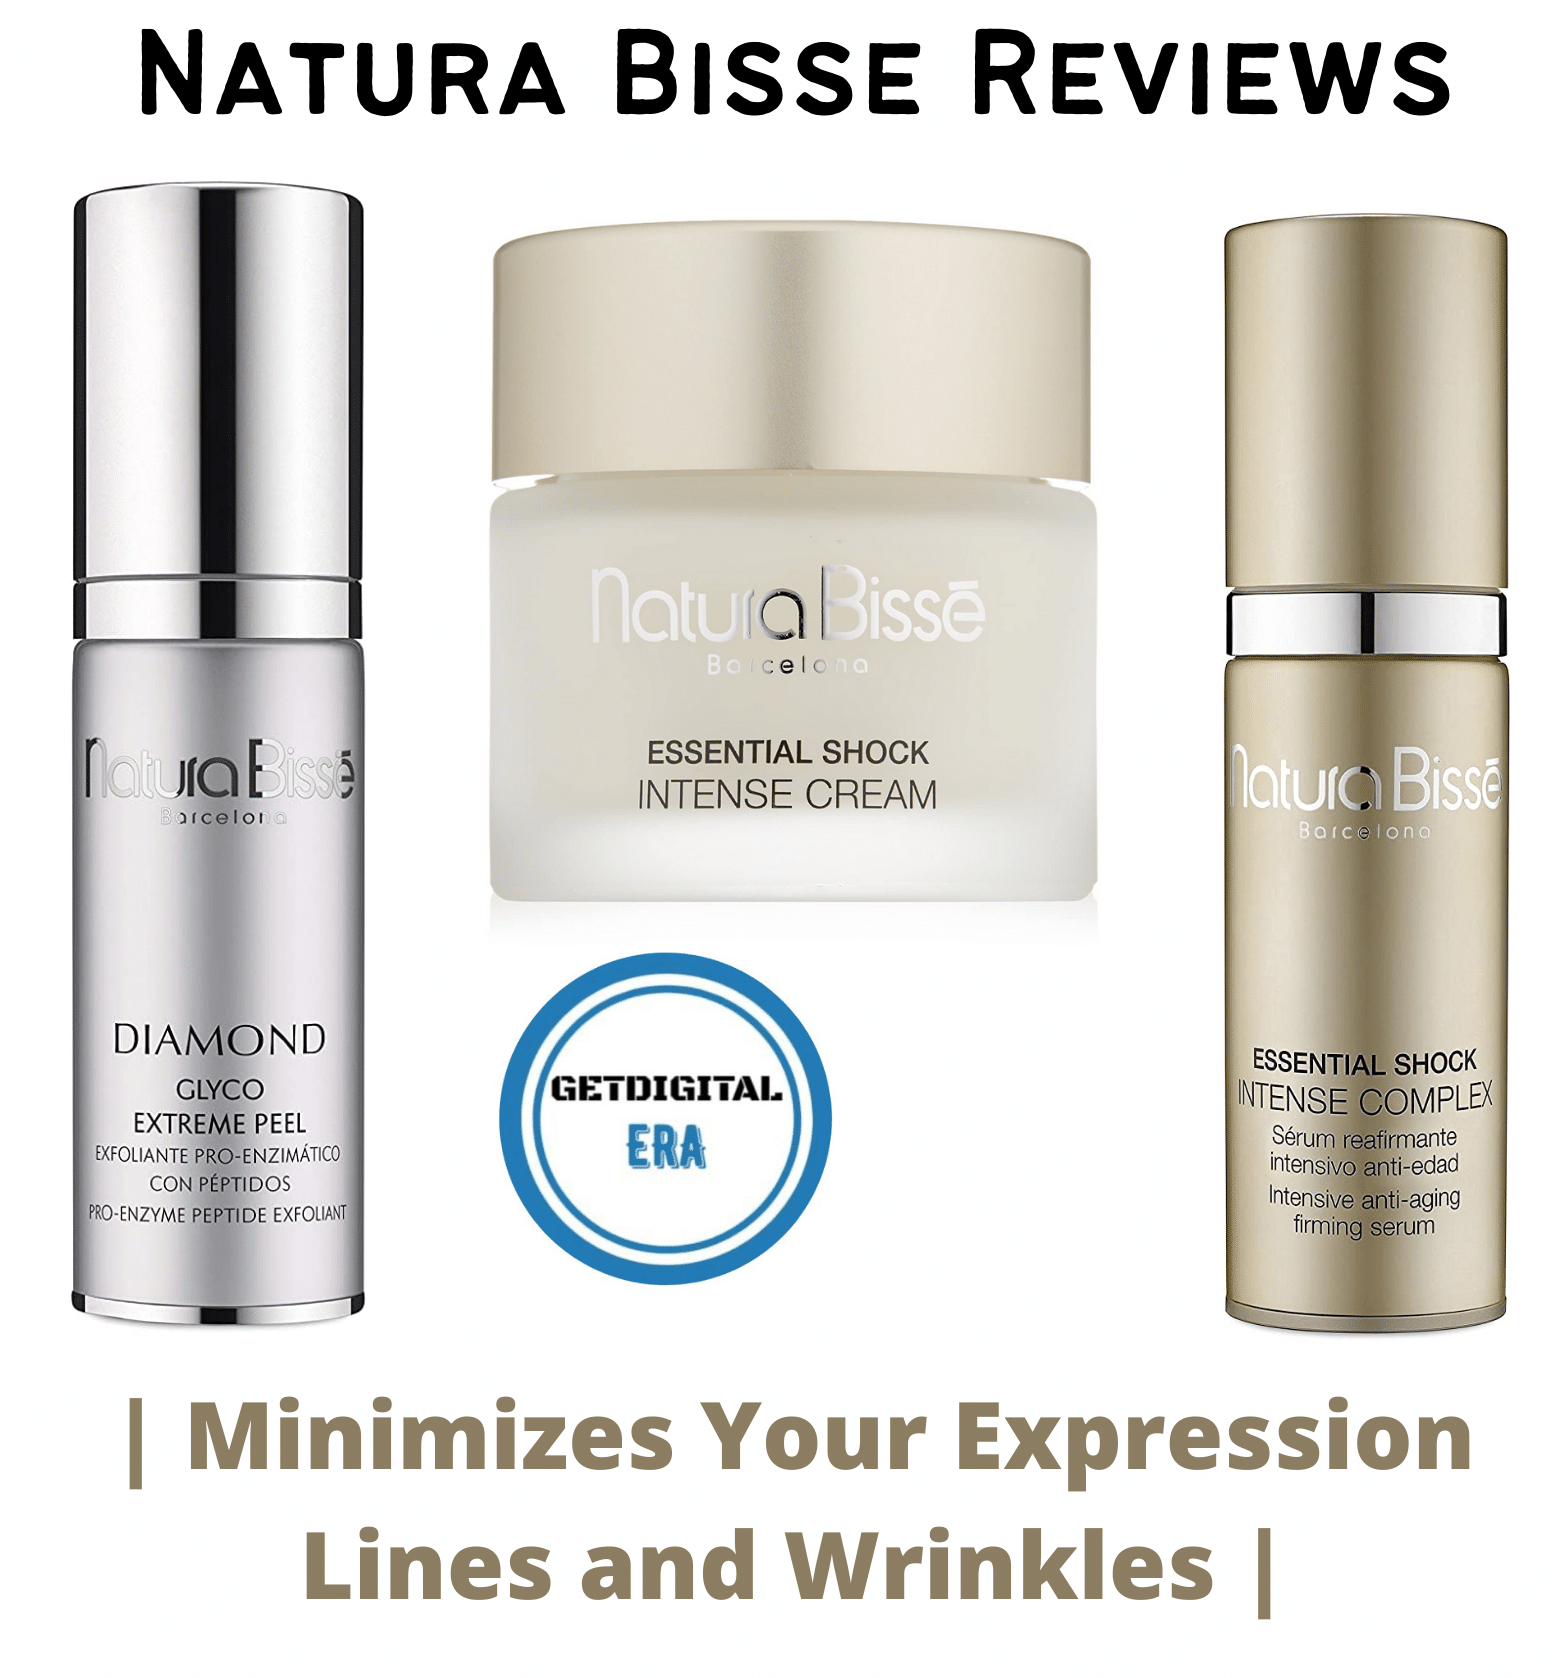 Natura Bisse Reviews